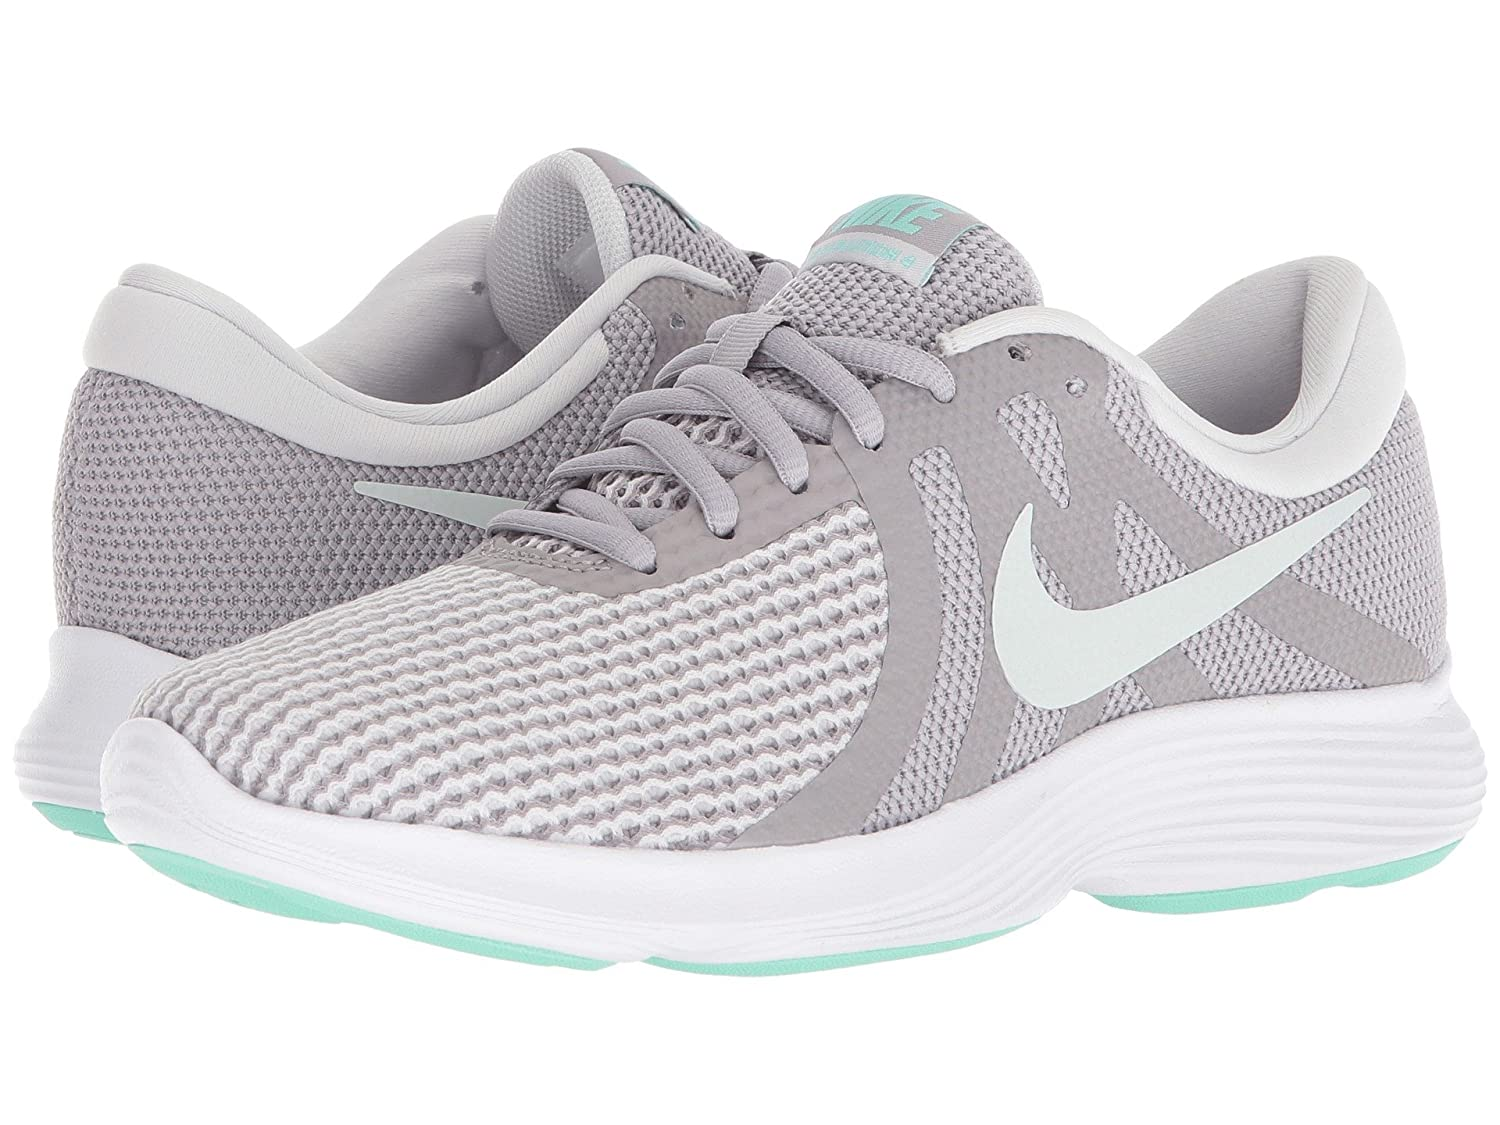 premium selection 52cb0 38745 Amazon.com   Nike WMNS Revolution 4 Womens 908999-007 Size 11   Road Running